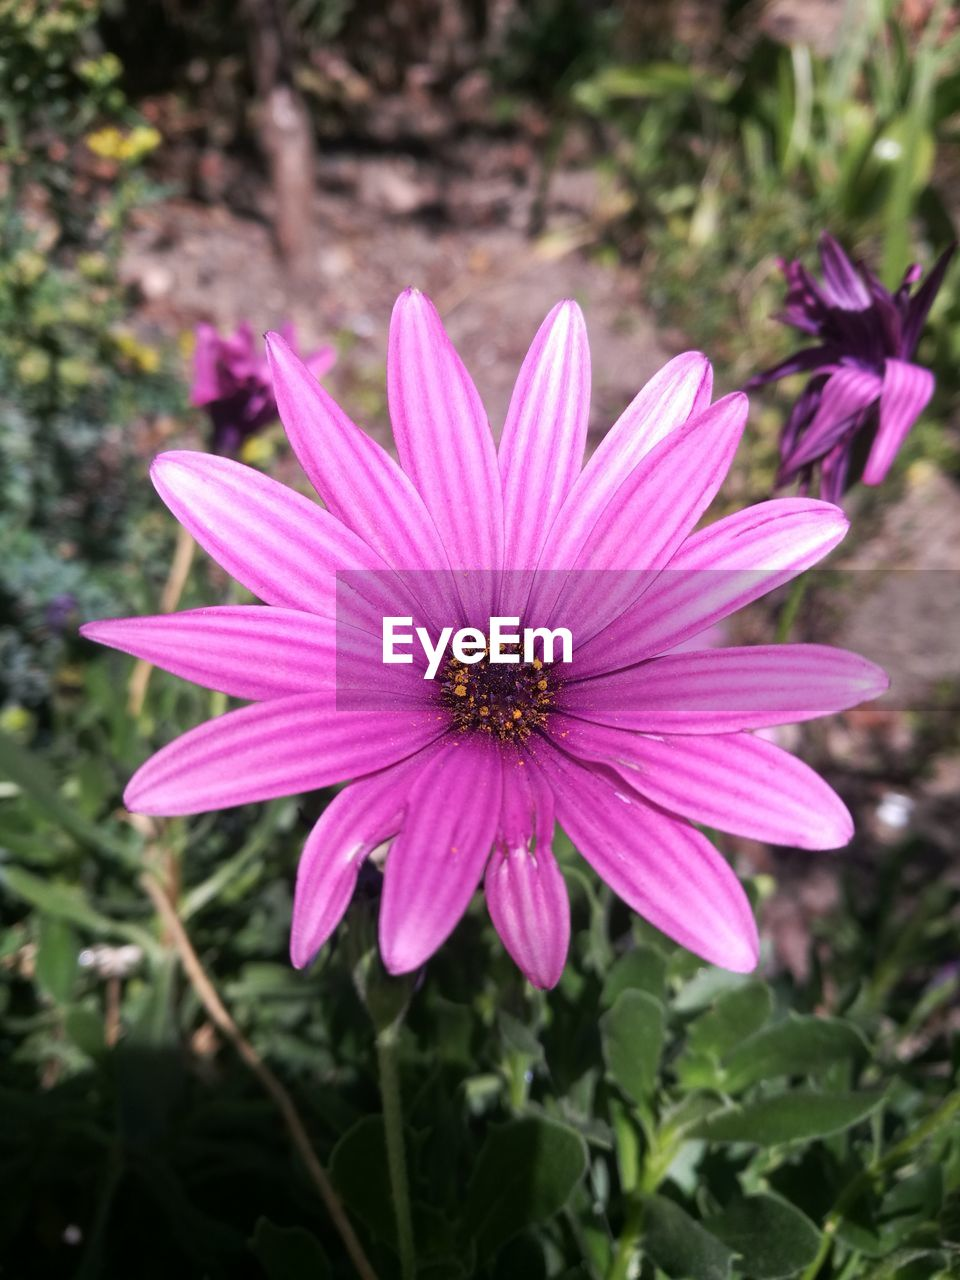 flower, petal, fragility, flower head, growth, nature, freshness, focus on foreground, blooming, plant, pink color, beauty in nature, day, outdoors, purple, pollen, no people, close-up, osteospermum, eastern purple coneflower